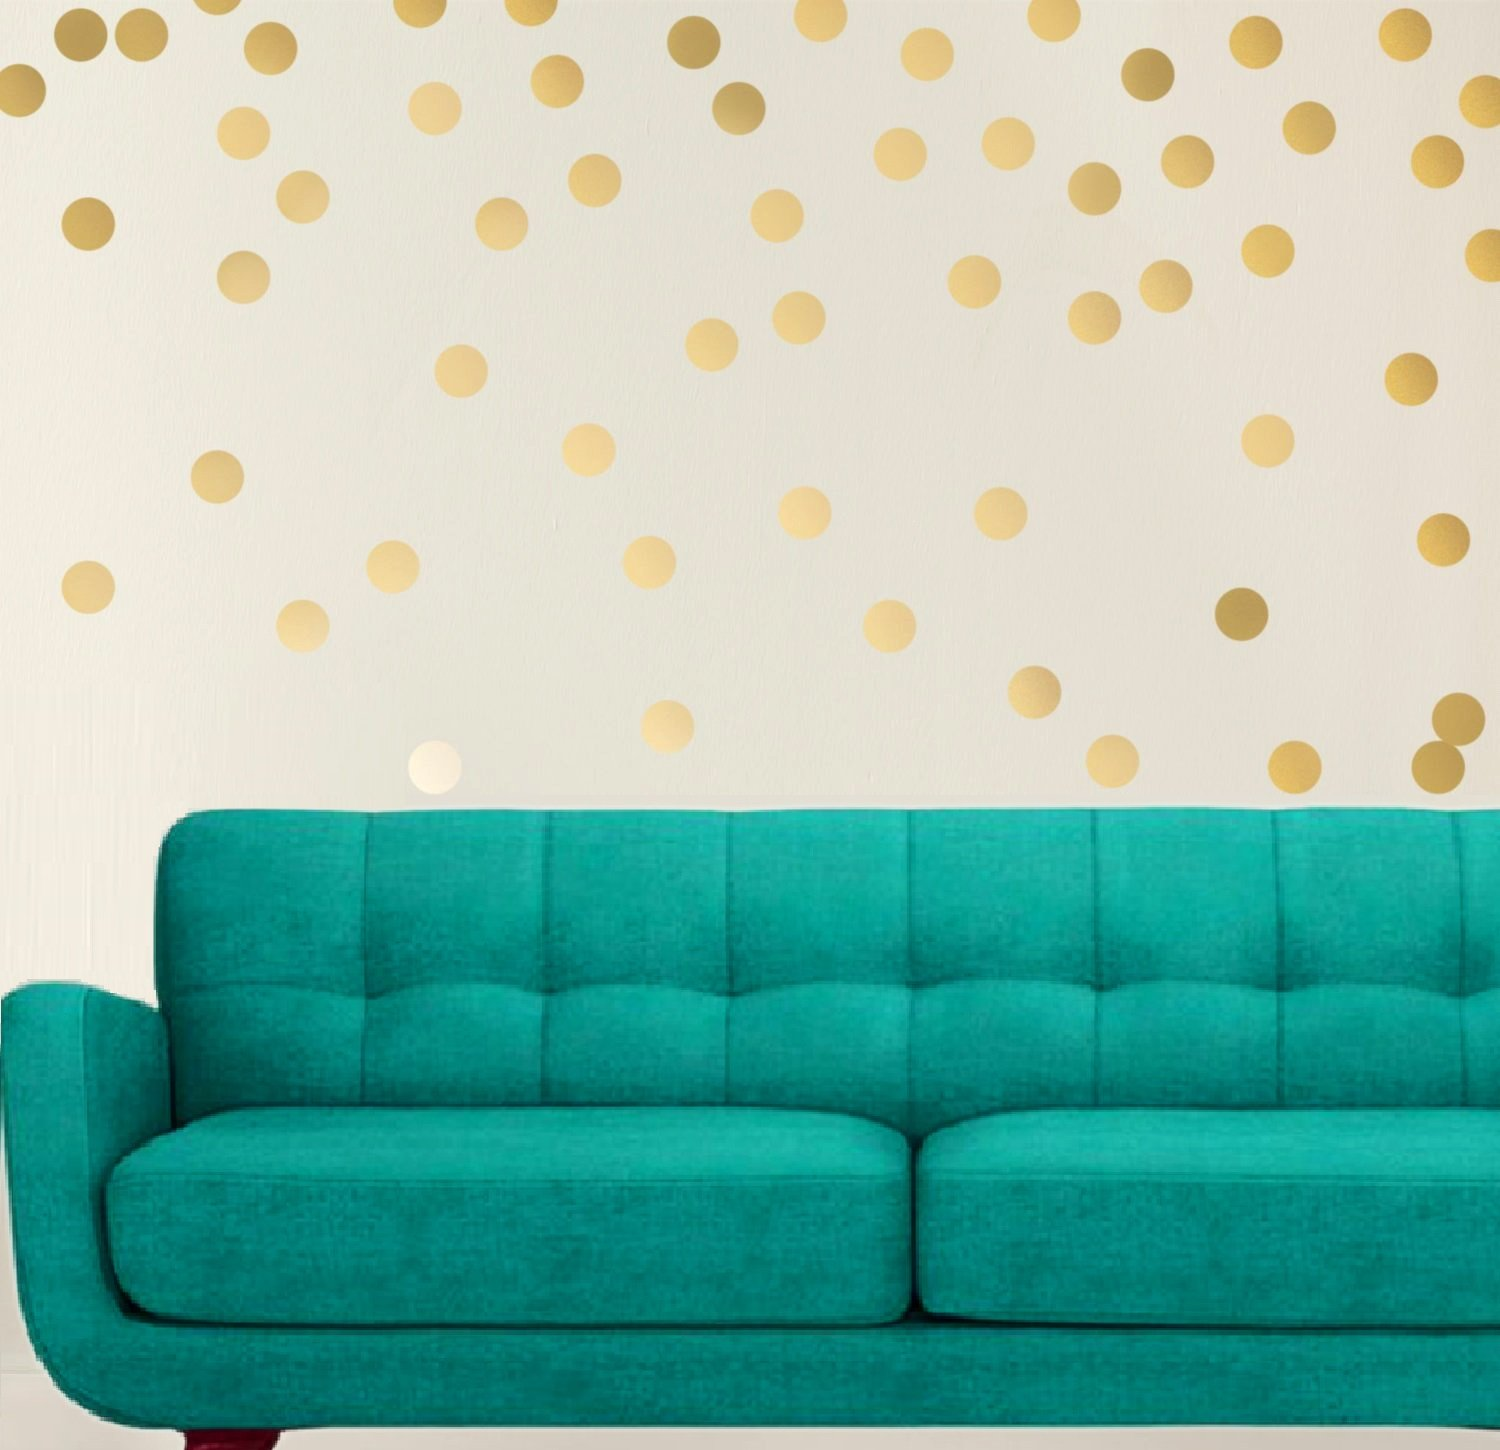 New 200 gold polka dot wall decals art decoration double sided new 200 gold polka dot wall decals art decoration double sided metallic gold decals with amipublicfo Images